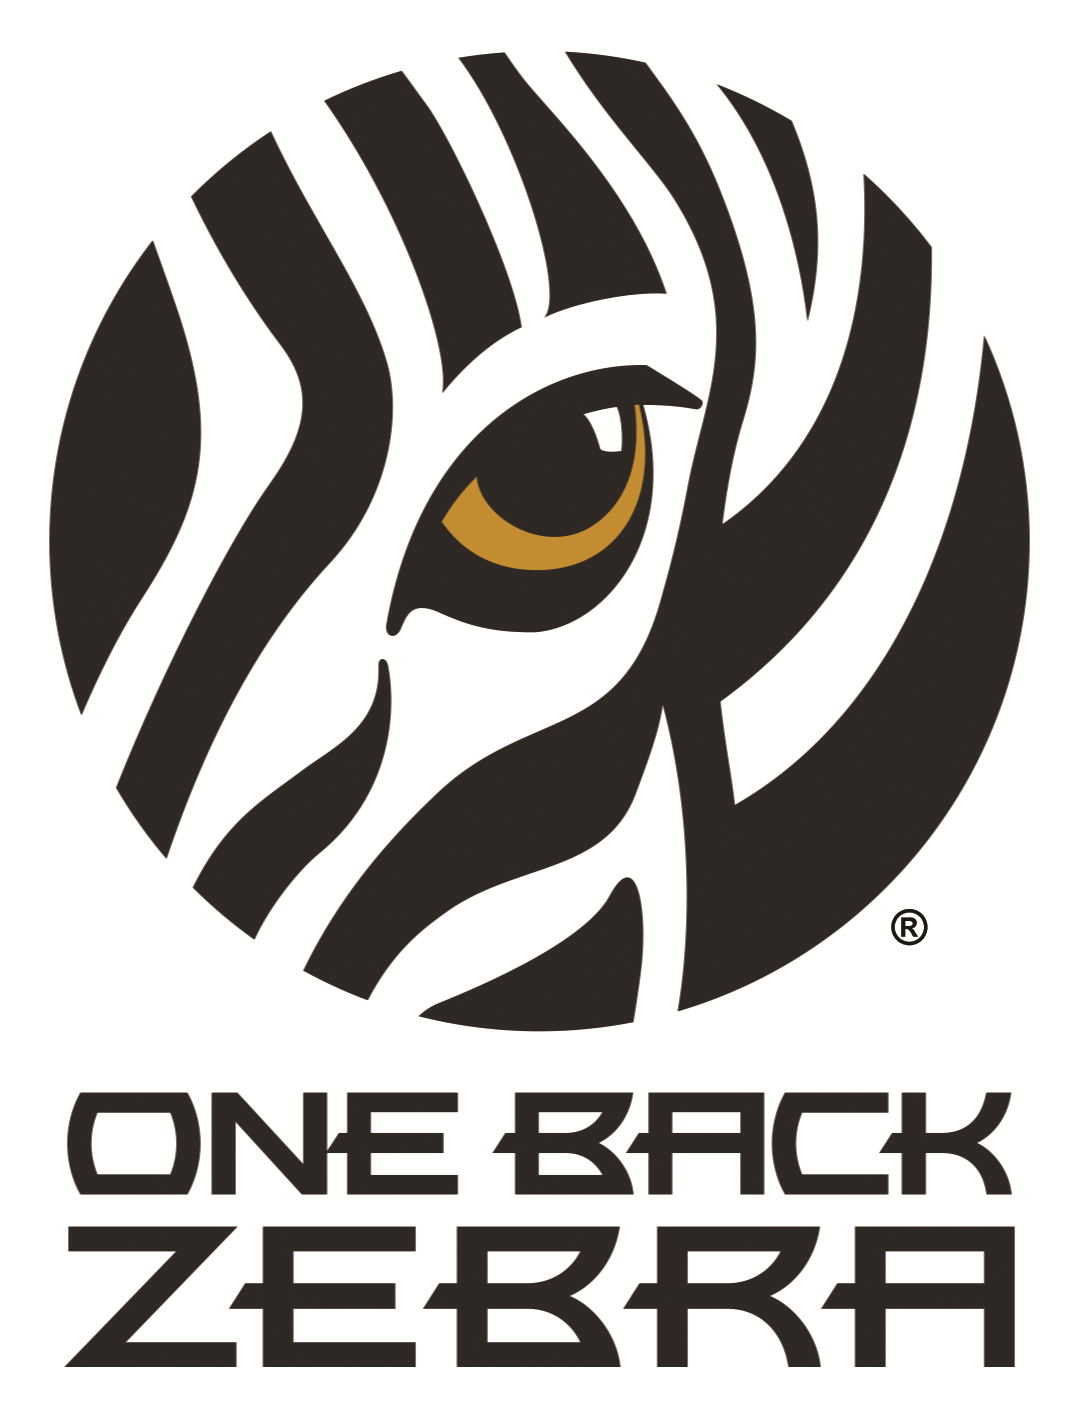 One Back Zebra